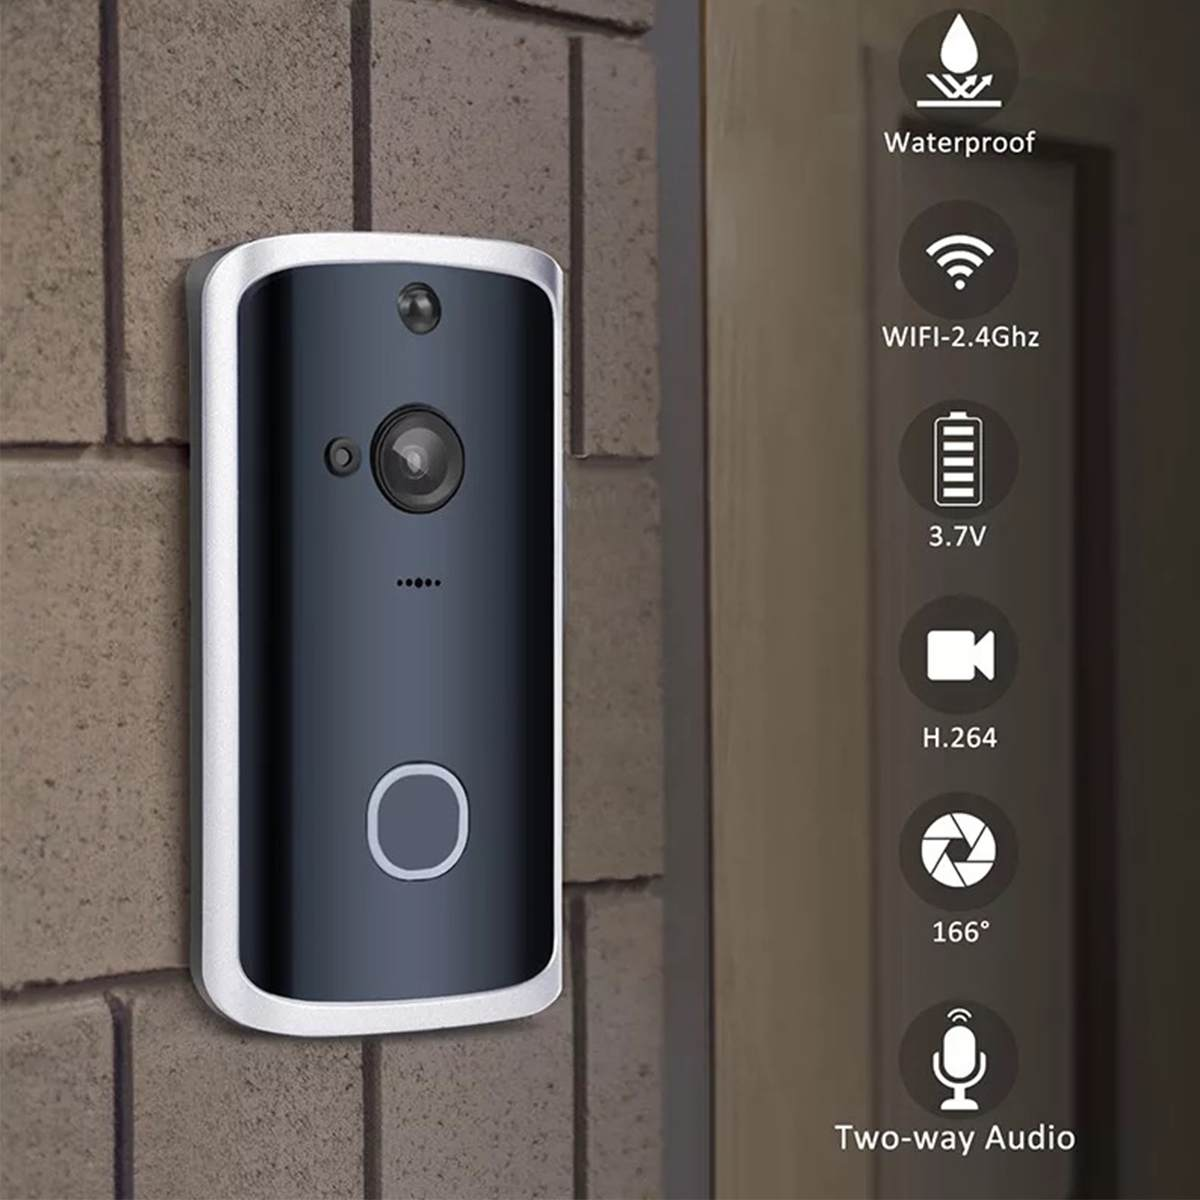 Smart 2 Way Wireless Doorbell WiFi Video Doorbell Camera Intercom APP Phone Record Picture Video Home Visual Security Door Bell